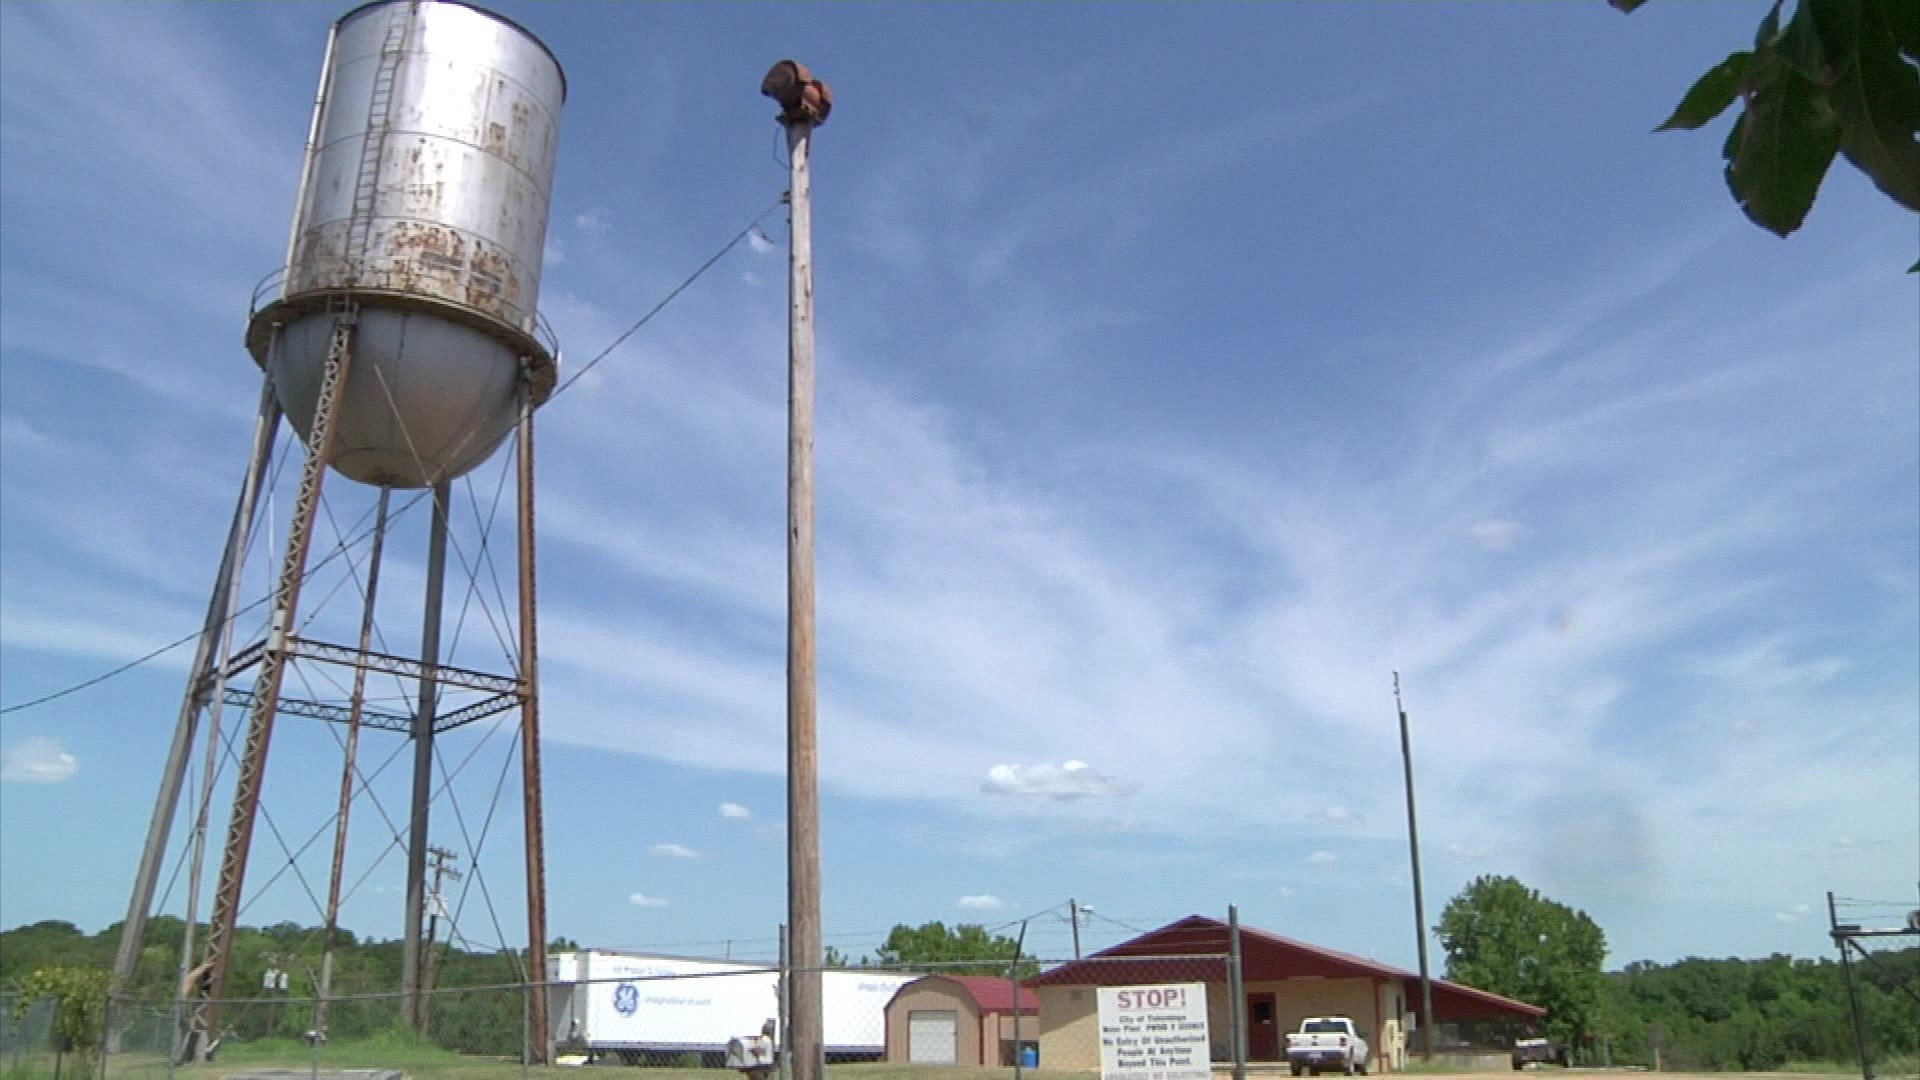 Teams are checking for leaks in the Tishomingo water system. (KTEN)